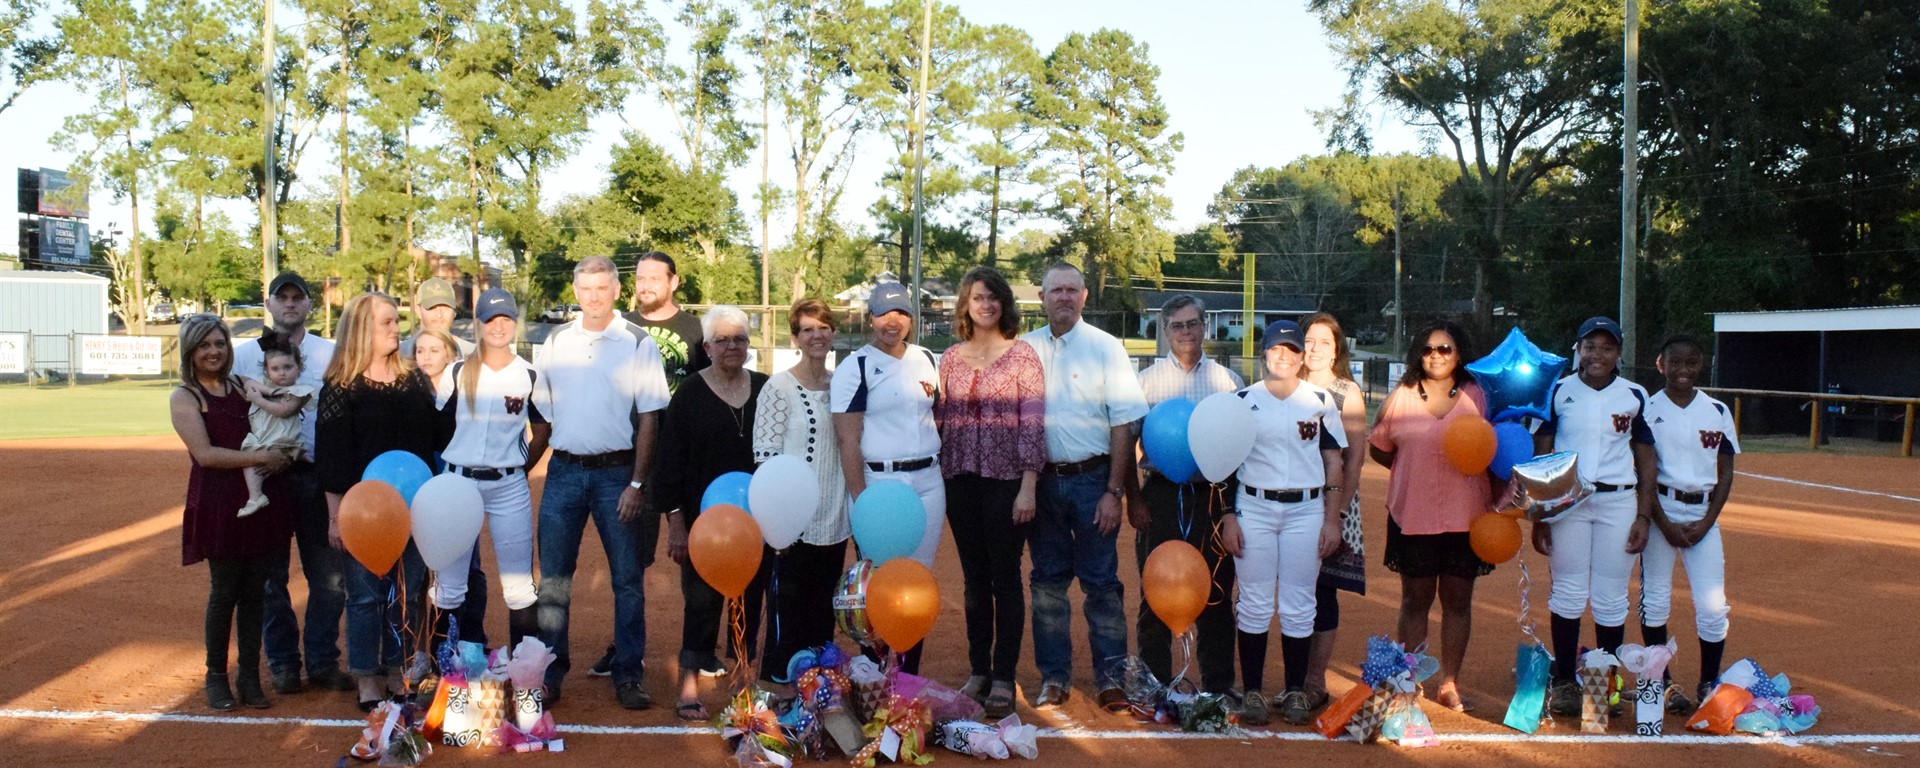 WCHS Slow-Pitch Softball Seniors Honored